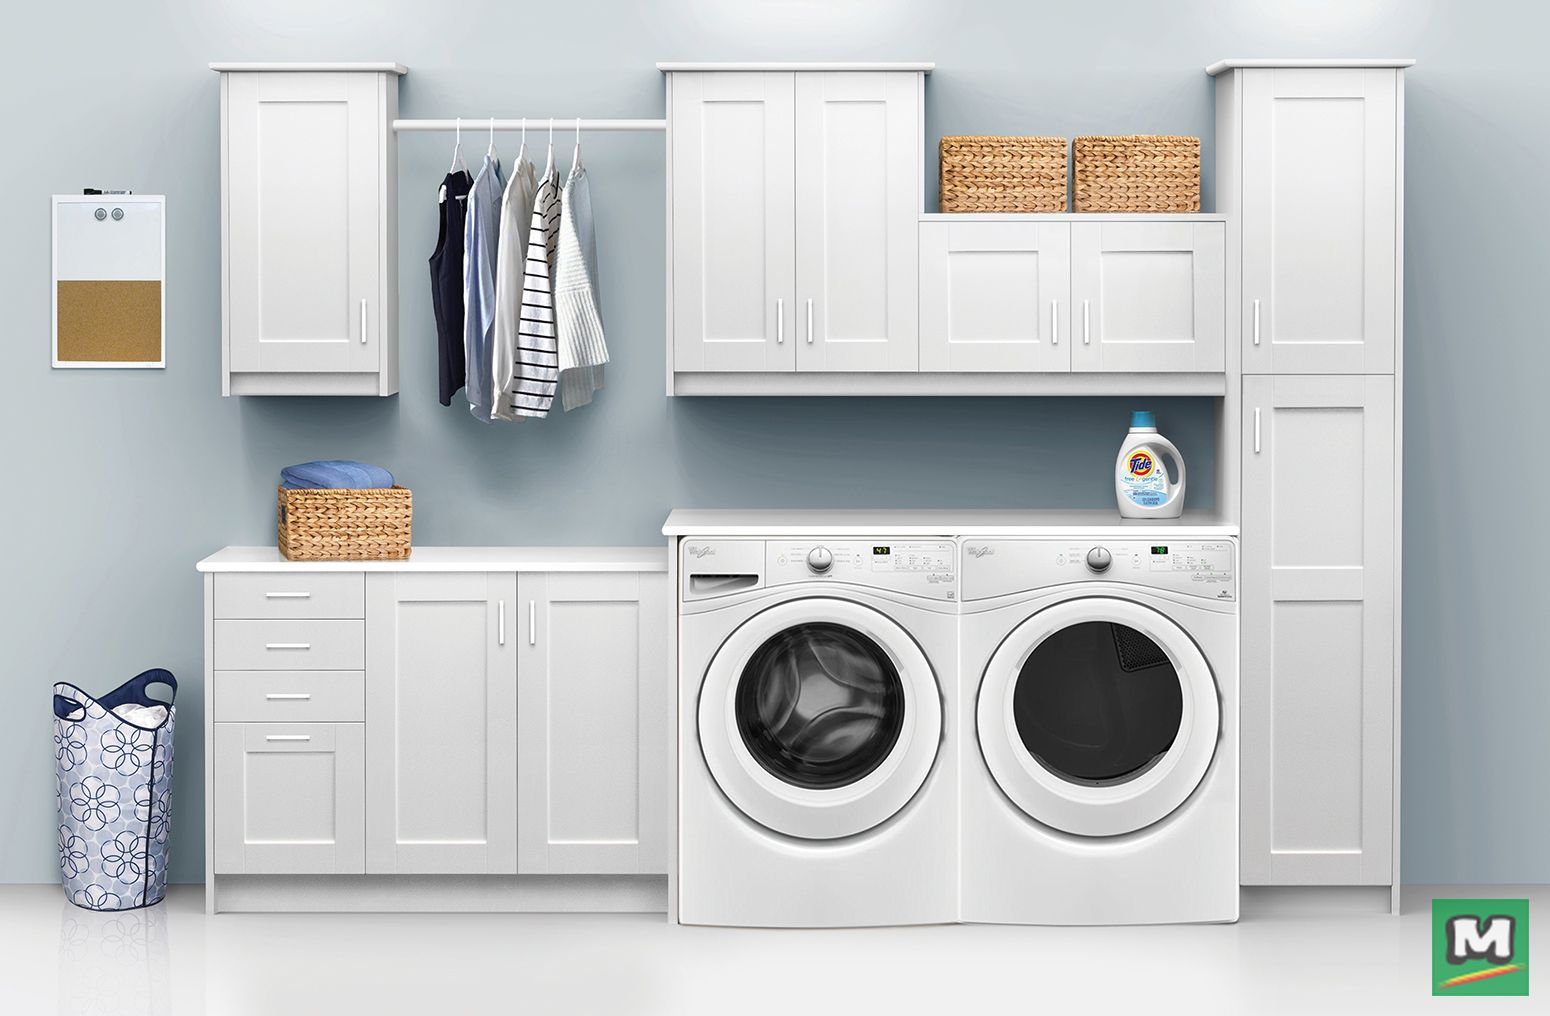 Klearvue Cabinetry Will Help You Love Your Laundry Room Again Create A One Of A Kind Layout Wit Laundry Room